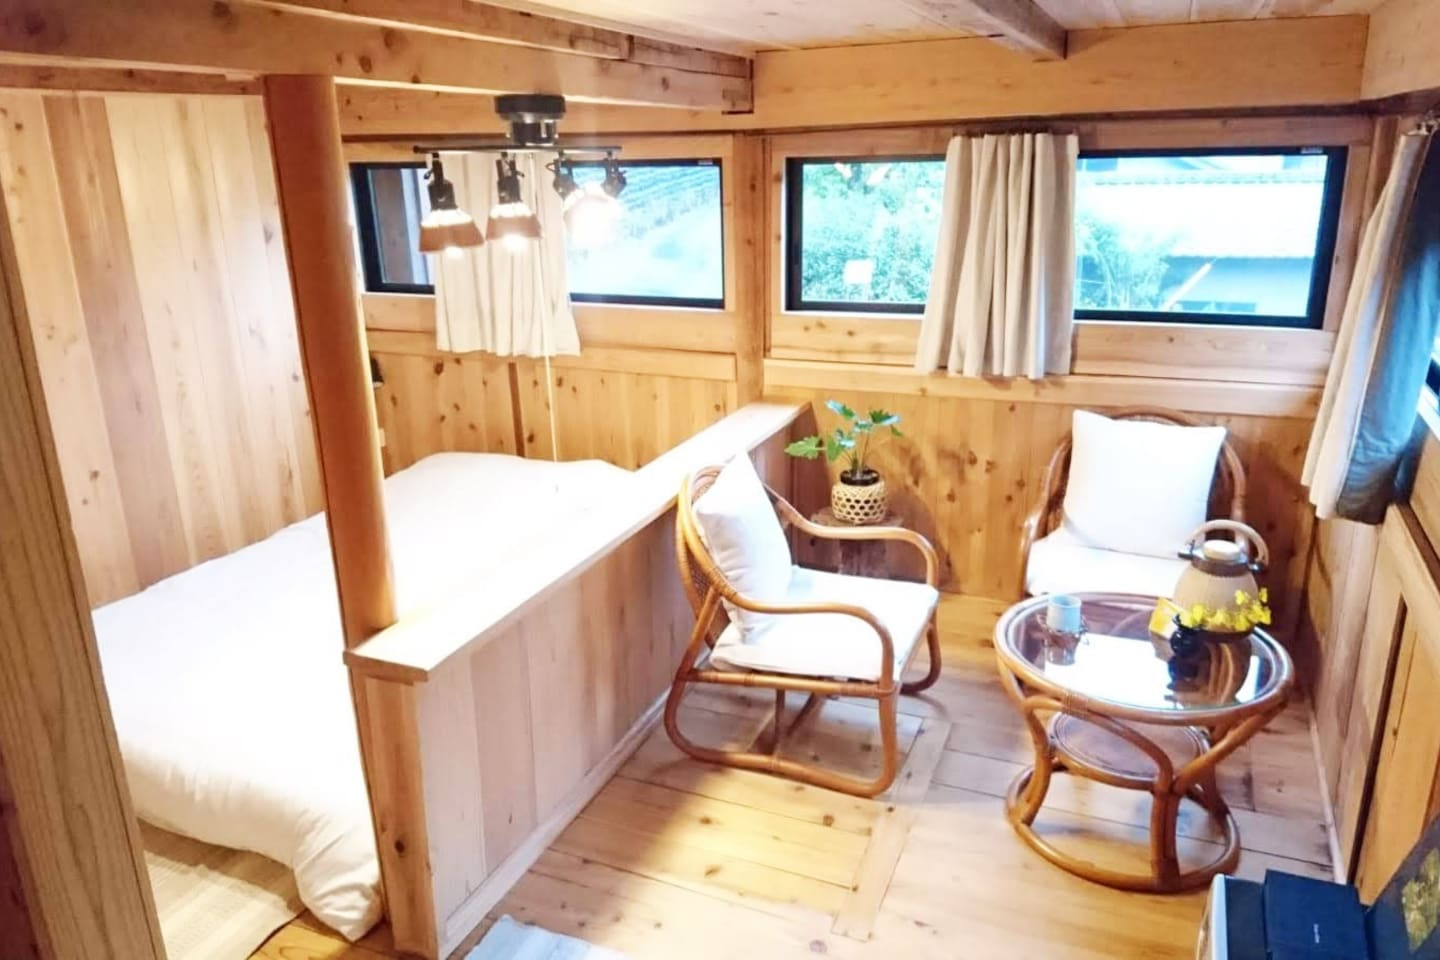 Welcome to Yui Valley guest unit. this is the bed room with small living room